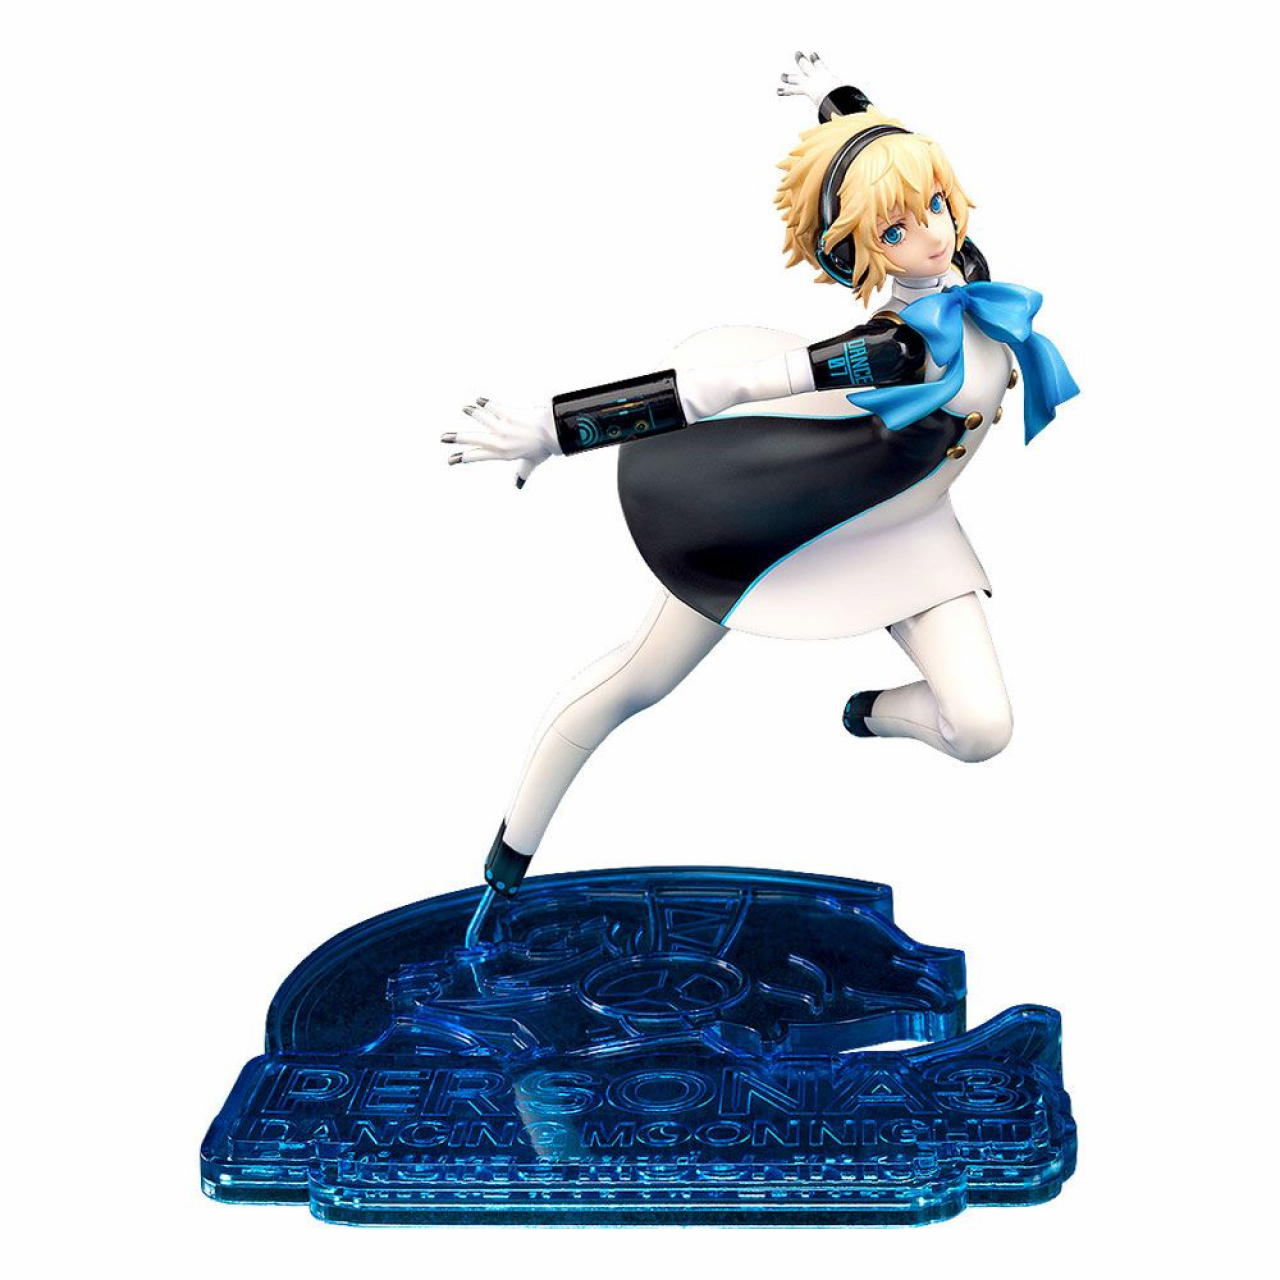 Persona 3: Dancing in Moonlight PVC Statue 1/7 Aigis 20 cm